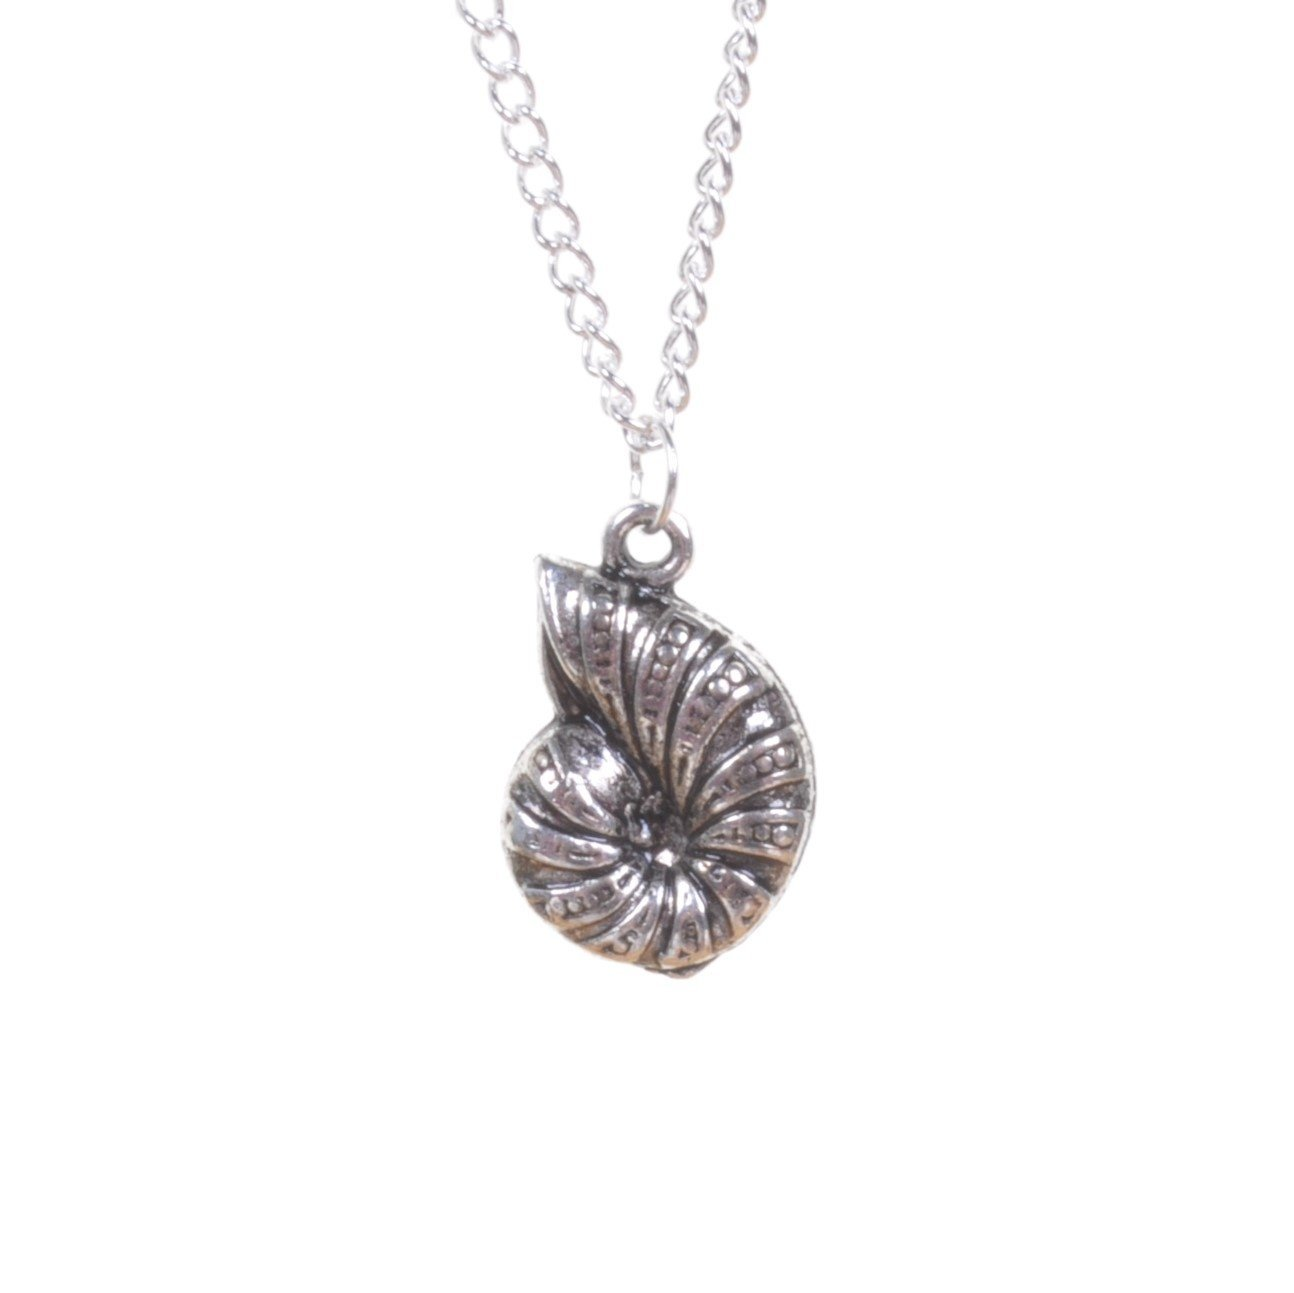 Silver Ammonite Pendant Necklace - Minimum Mouse